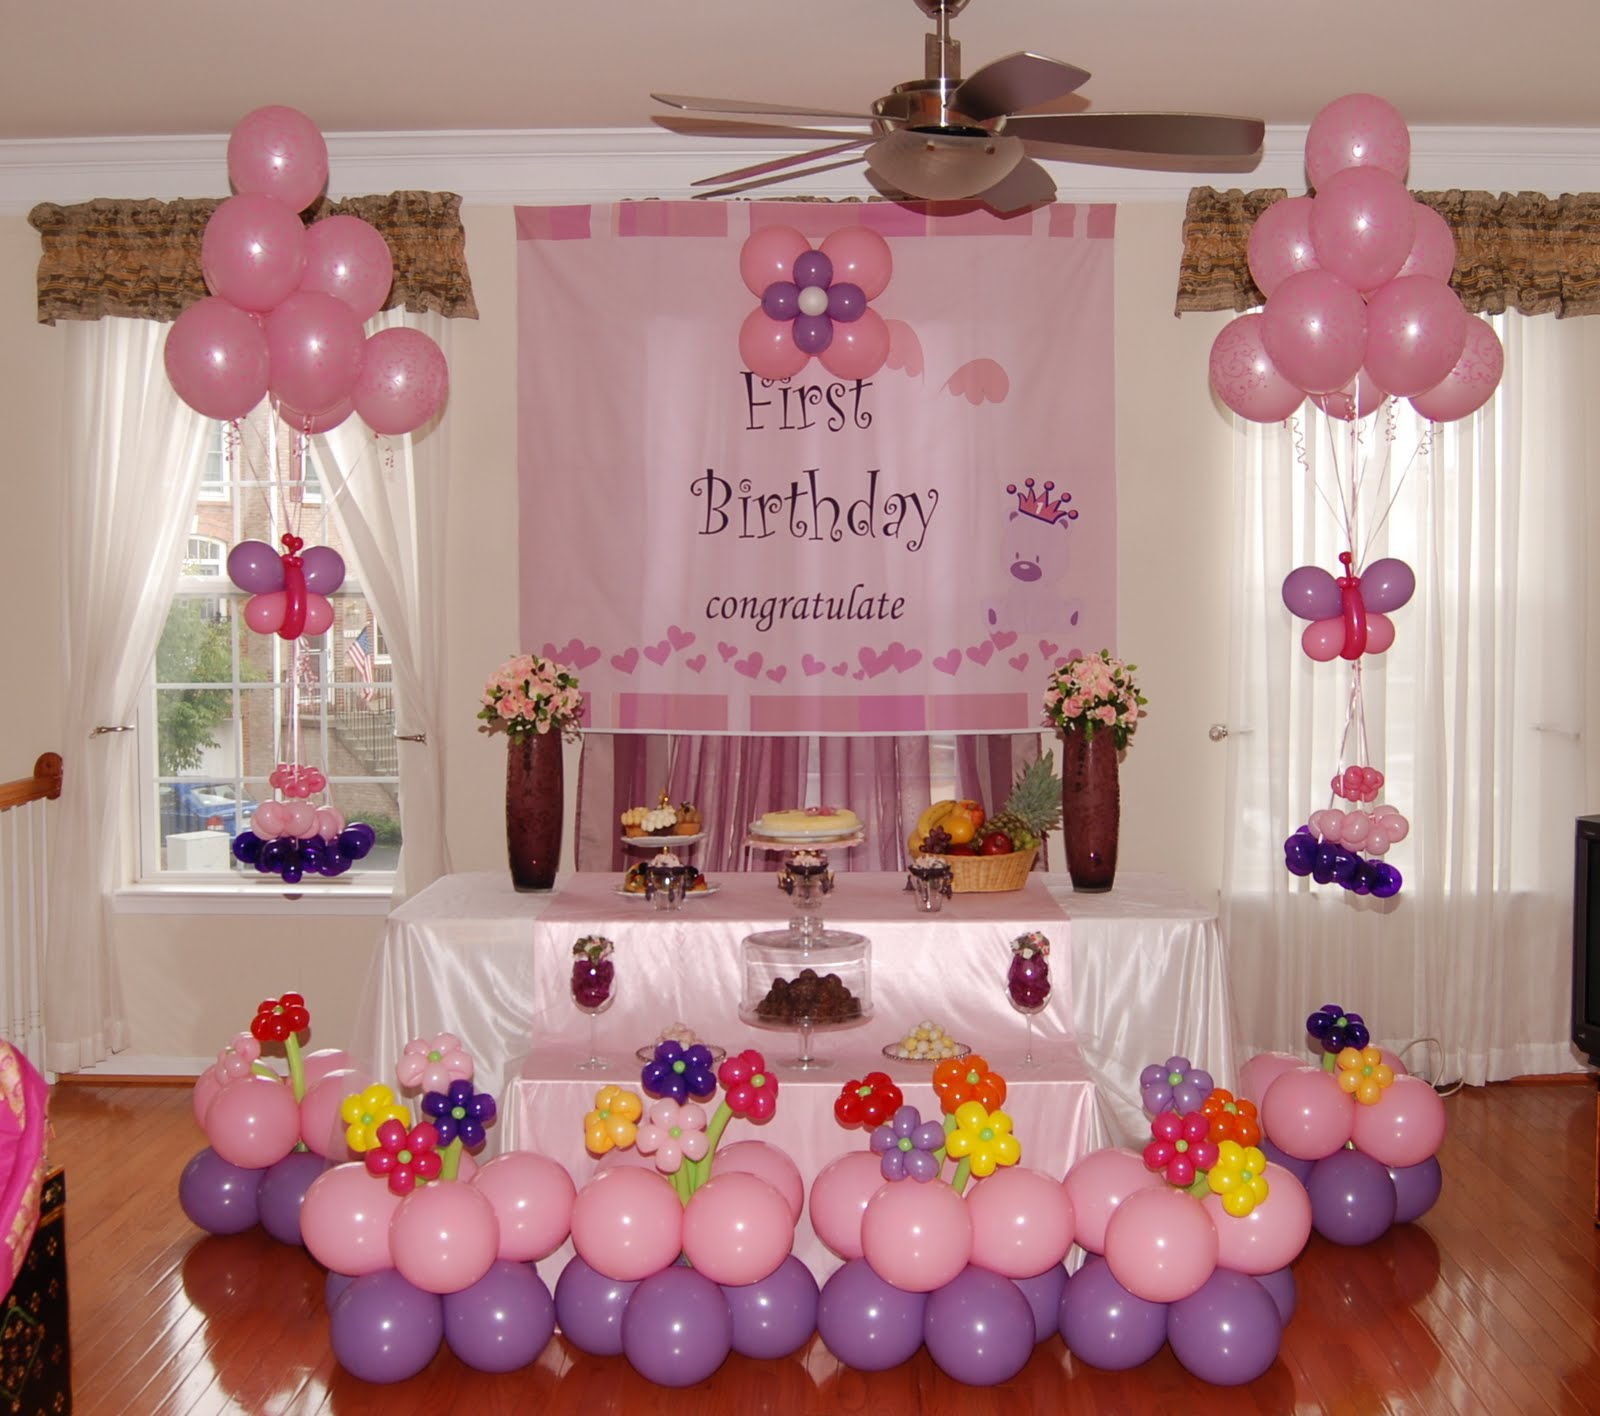 Mrs.Homemaker: Bash Your Treat with Balloons